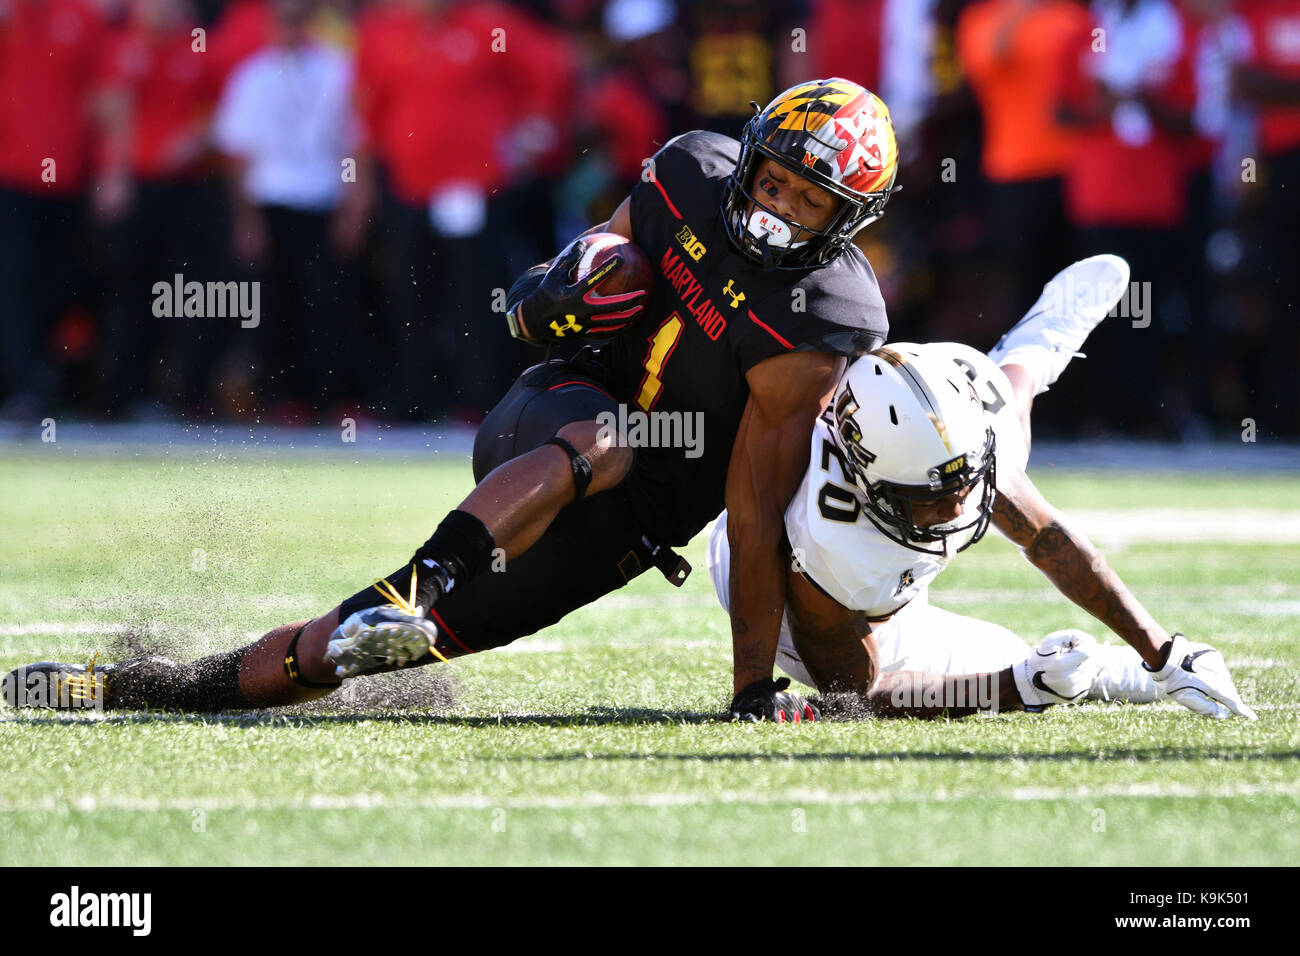 College Park, Maryland, USA. 23rd Sep, 2017. Maryland Terrapins wide receiver D.J. MOORE (1) is tackled by UCF Knights - Stock Image